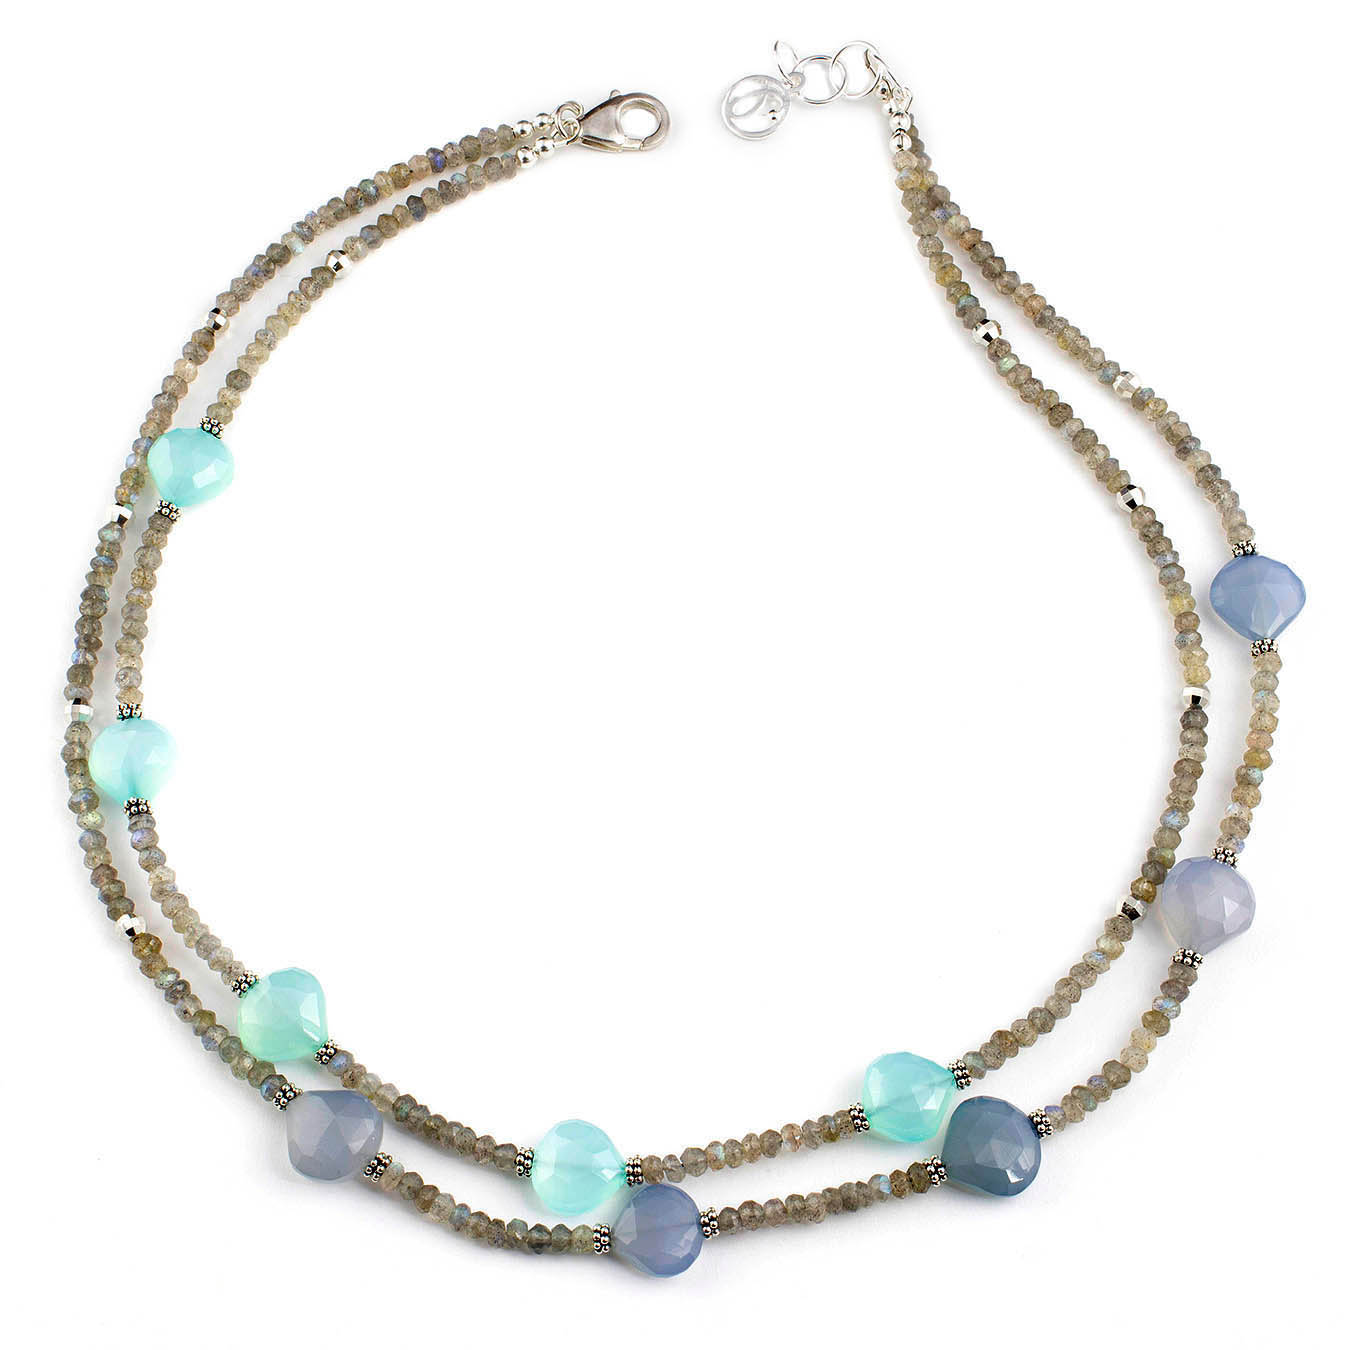 Double strand necklace made with labradorite and chalcedony gemstones